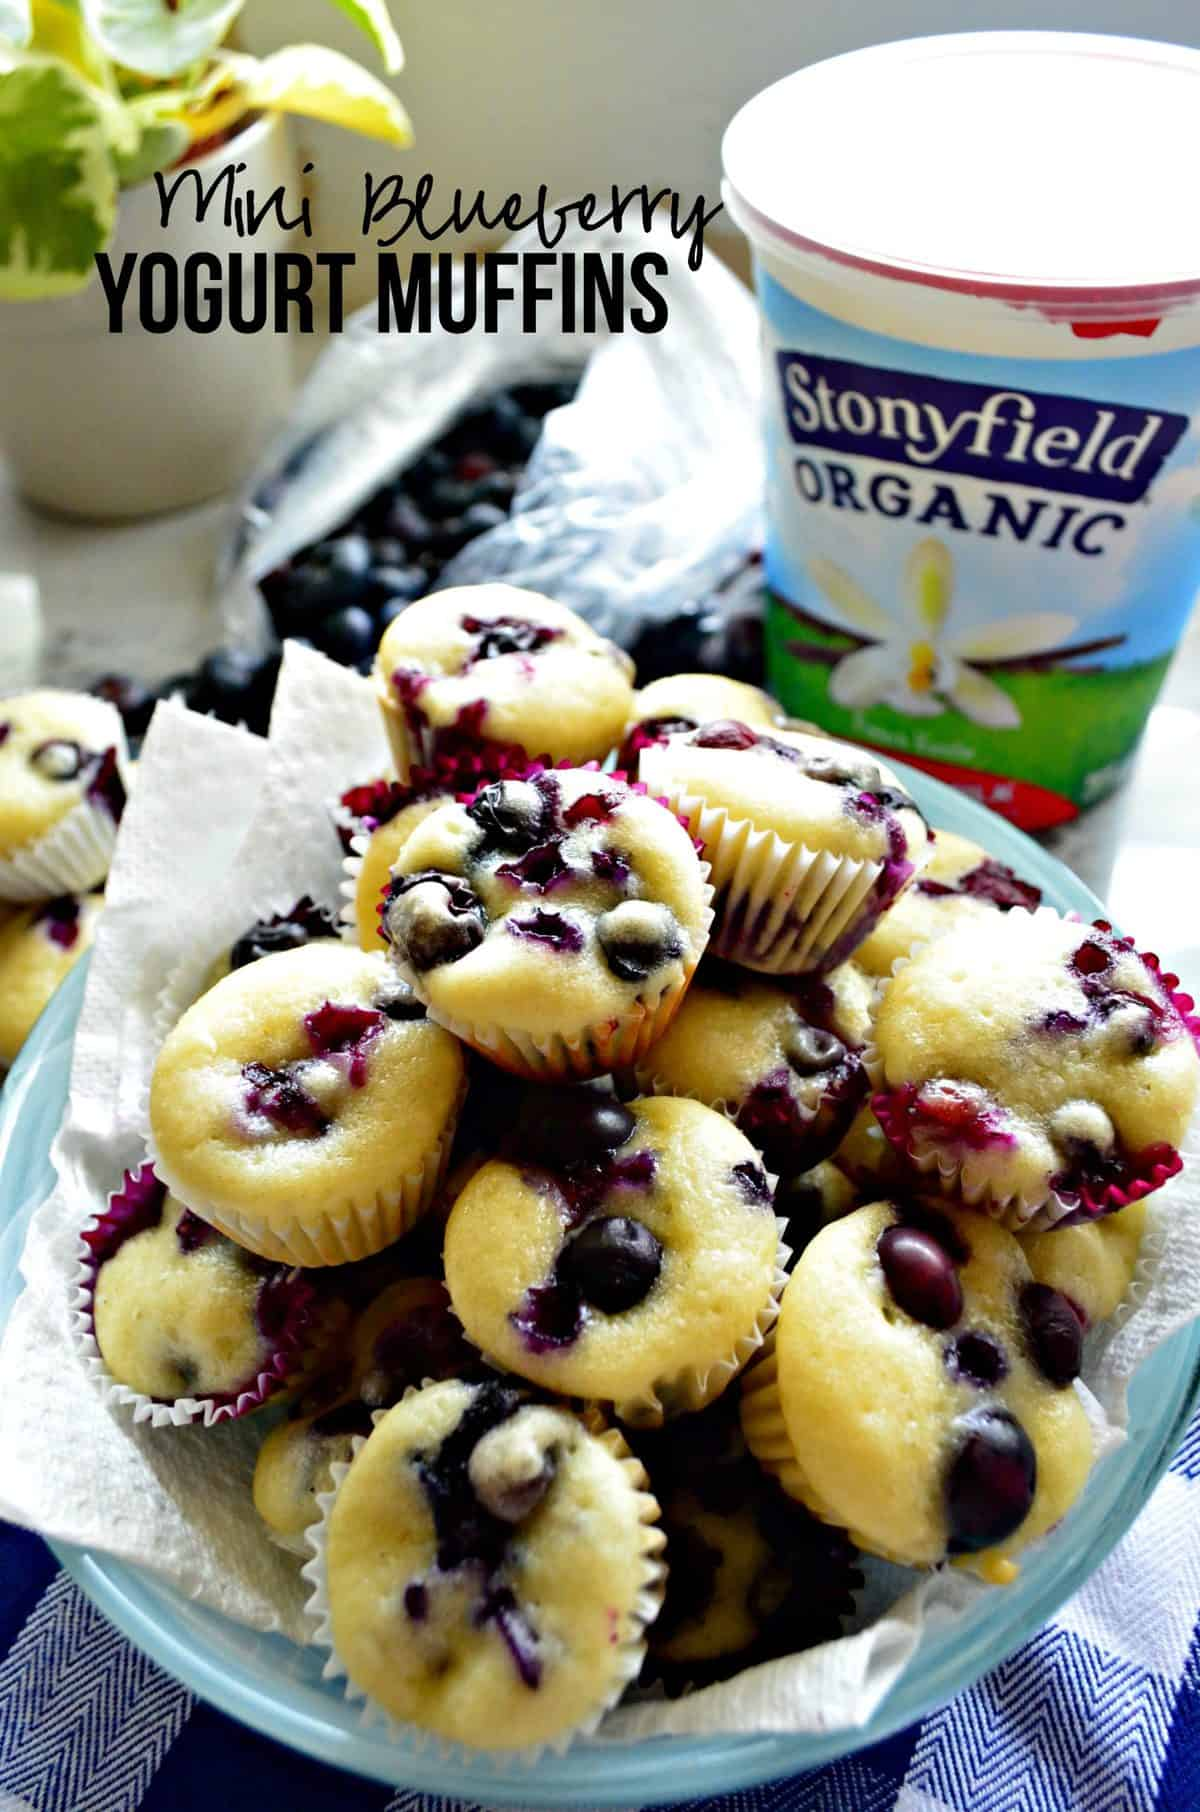 blue plate stacked high with min blueberry muffins in front of stonyfield organic yogurt with title text.